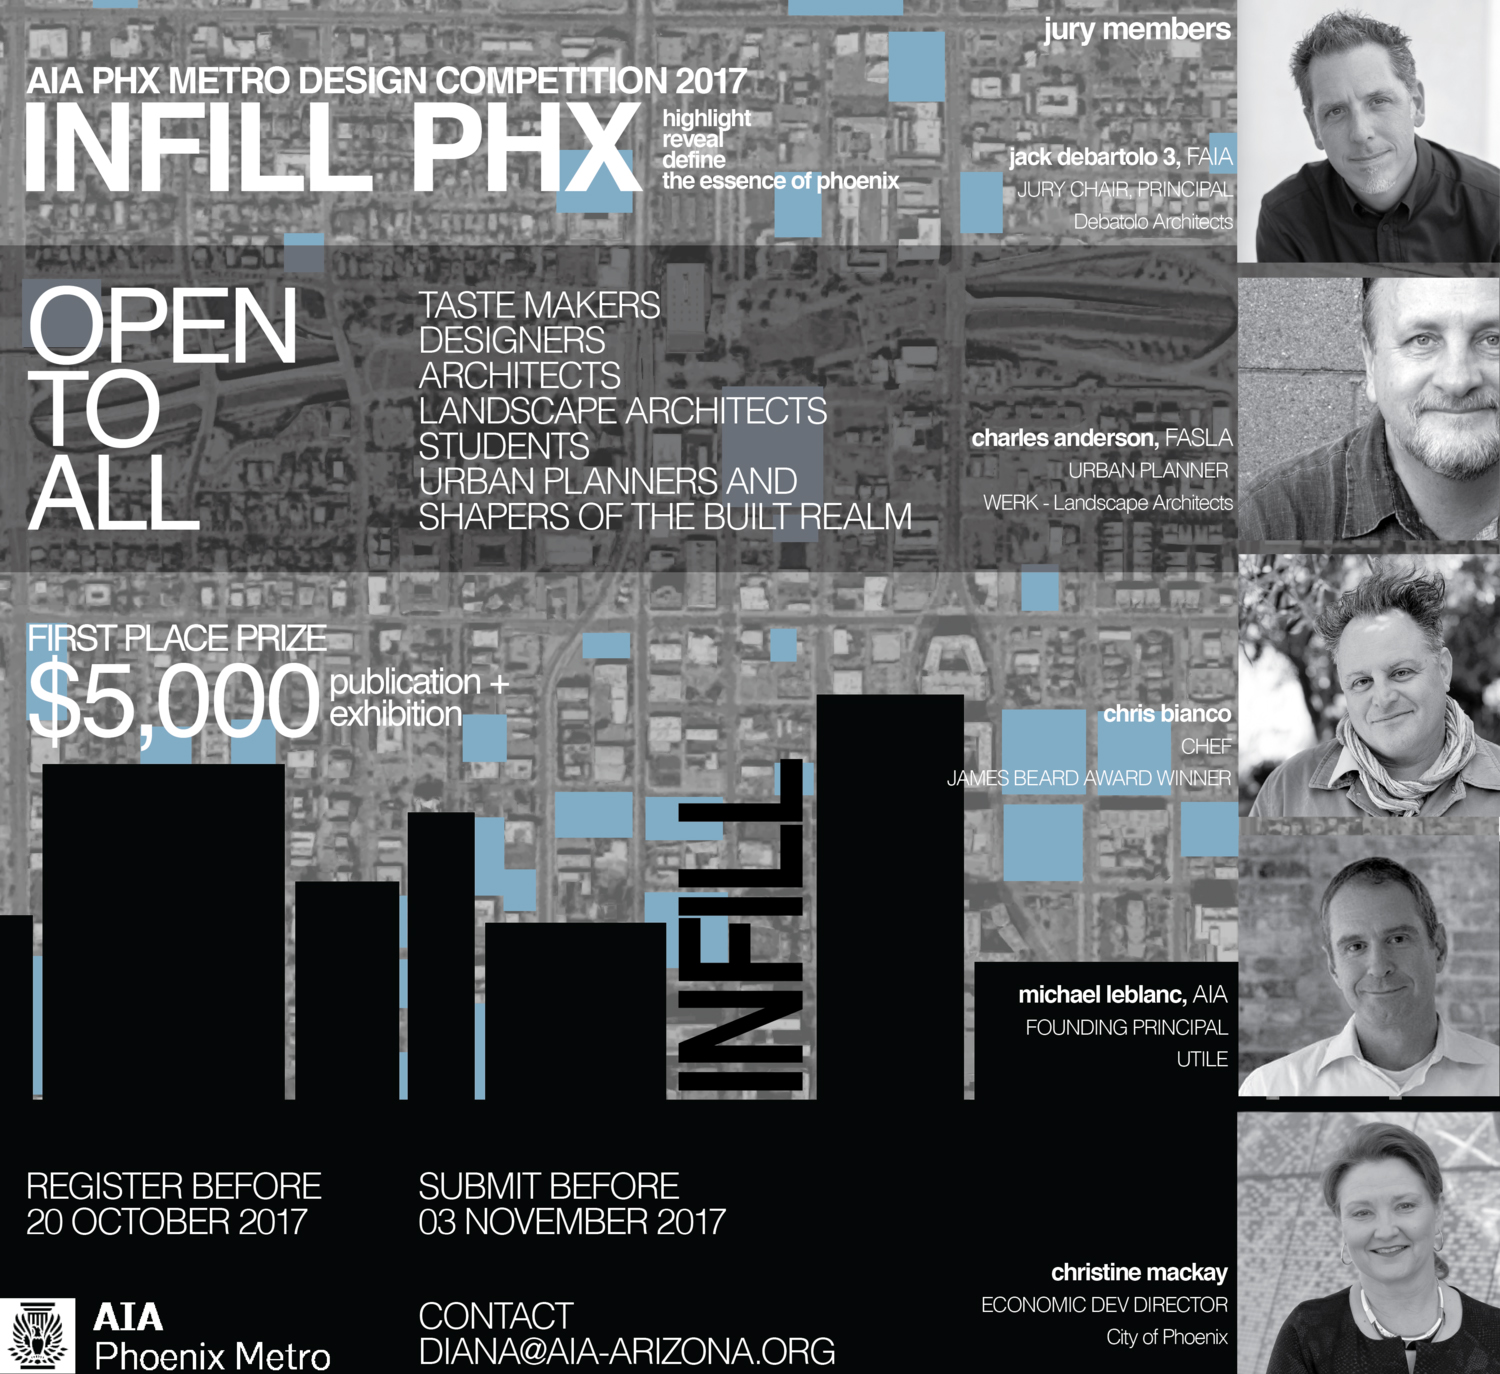 Michael LeBlanc serves as juror for AIA Phoenix competition